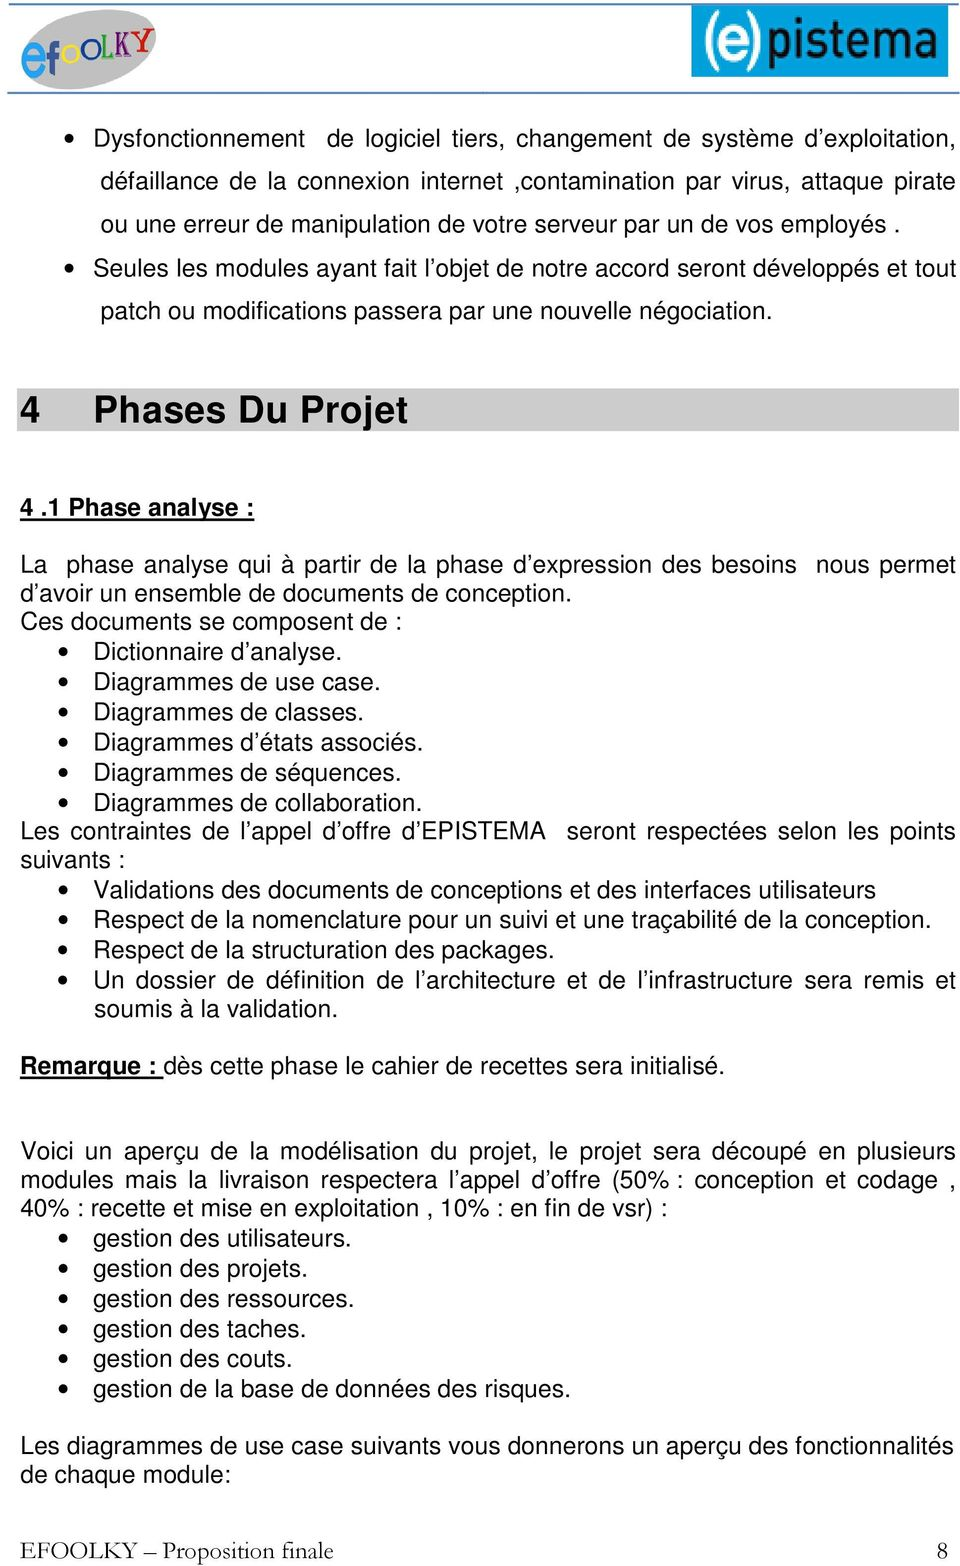 1 Phase analyse : La phase analyse qui à partir de la phase d expression des besoins nous permet d avoir un ensemble de documents de conception. Ces documents se composent de : Dictionnaire d analyse.